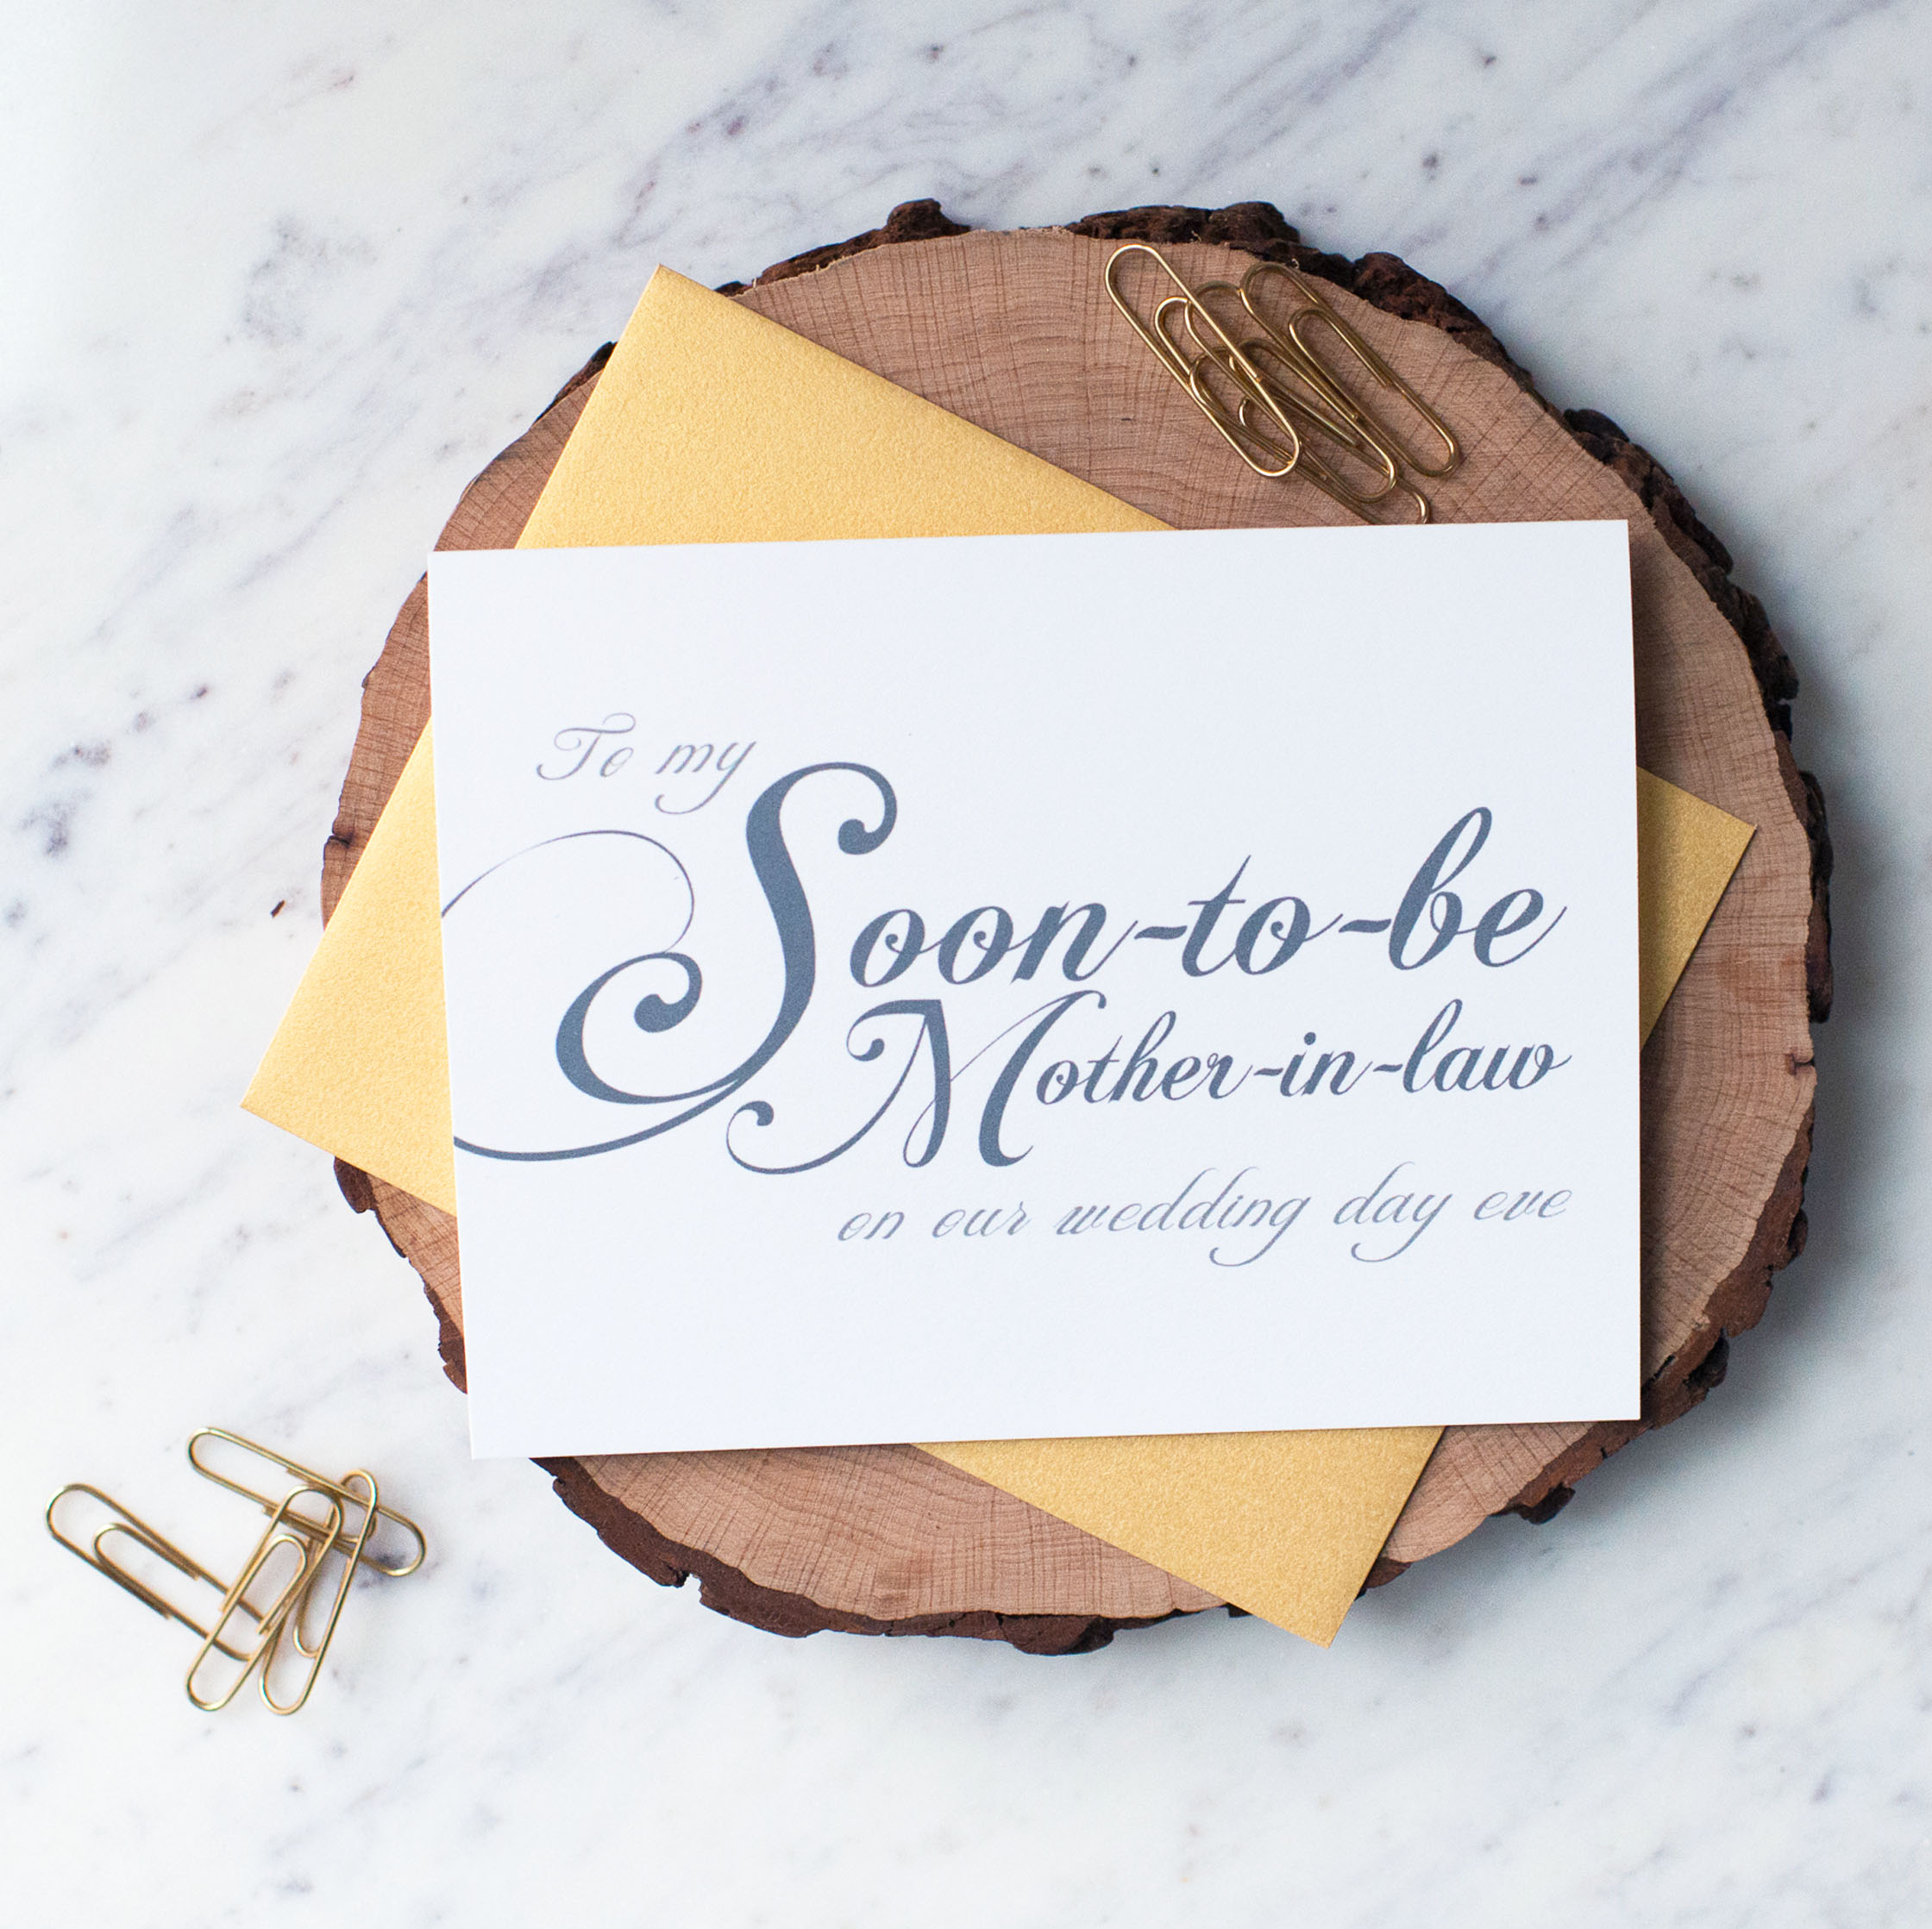 To My Soon-to-Be Mother-in-Law On Our Wedding Day Eve Card